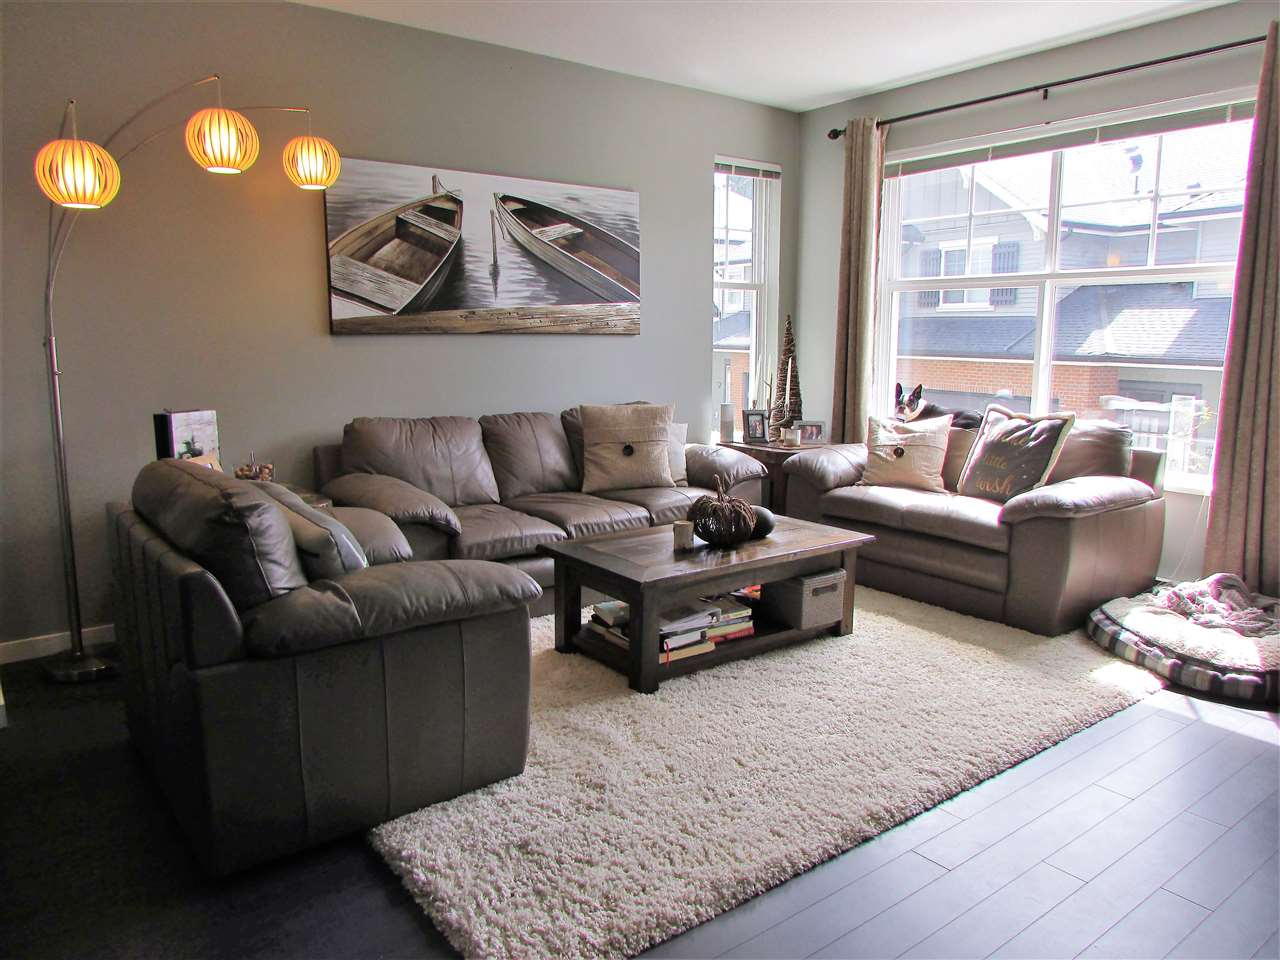 "Photo 10: 10 3470 HIGHLAND Drive in Coquitlam: Burke Mountain Townhouse for sale in ""BRIDLEWOOD"" : MLS® # R2164105"